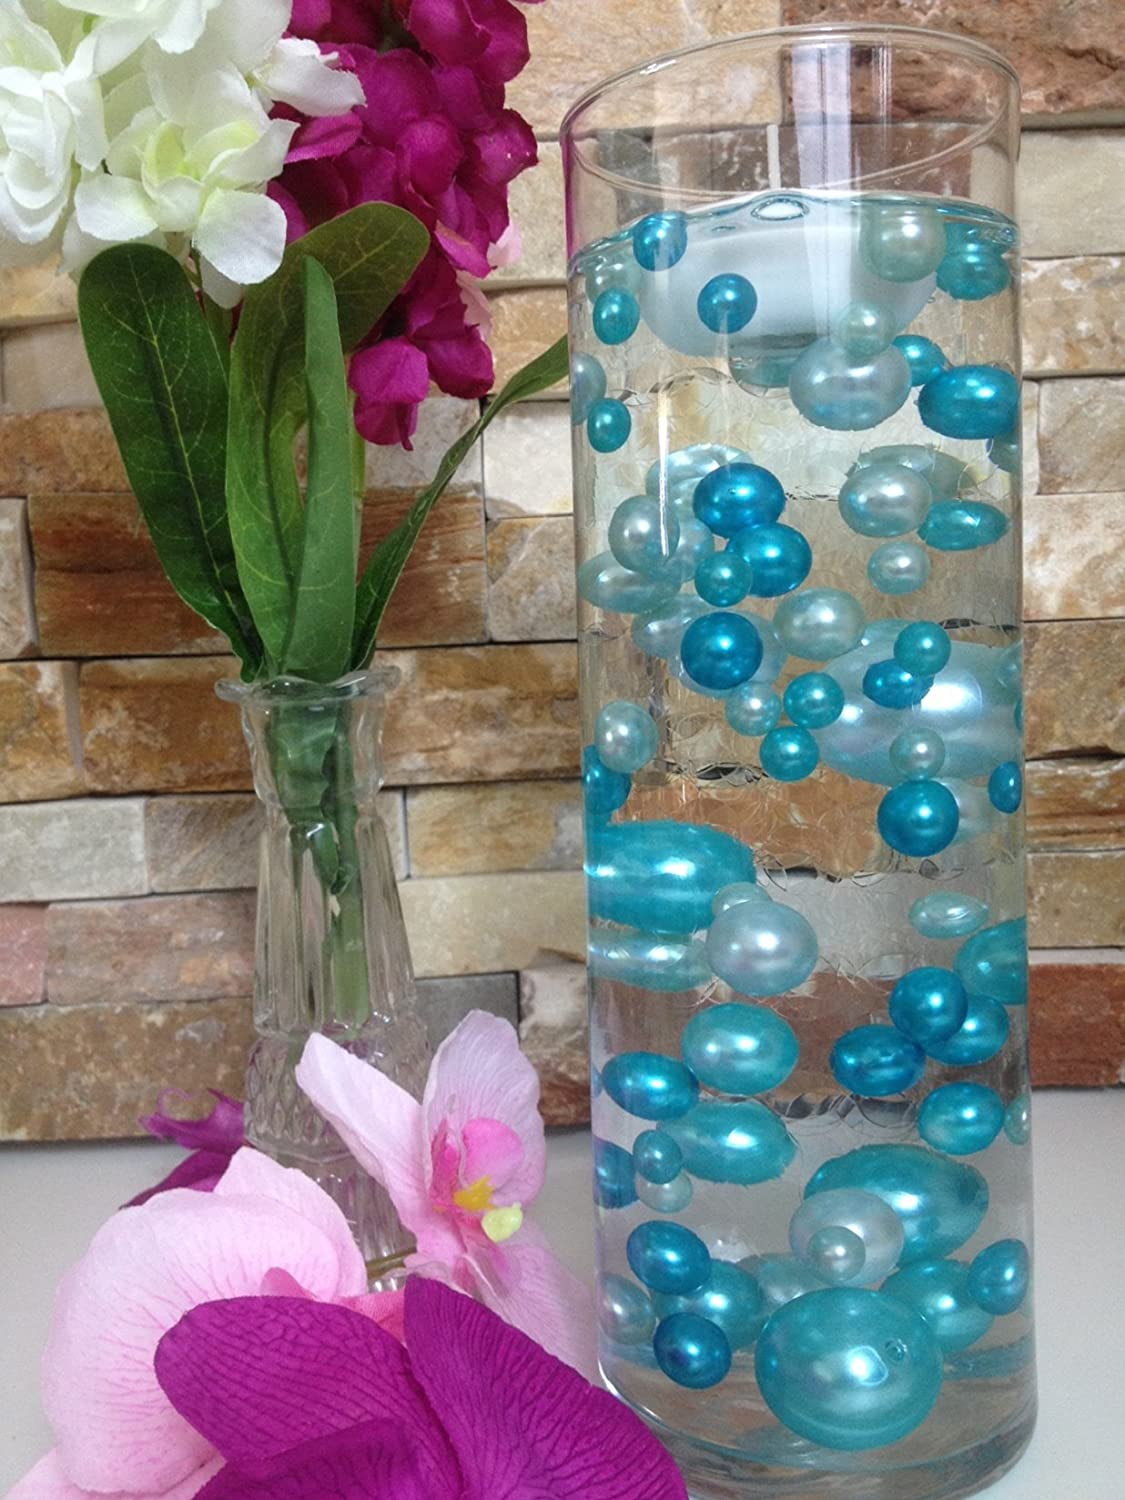 Amazon vase filler pearls for floating pearl centerpieces 80 amazon vase filler pearls for floating pearl centerpieces 80 teal blue light blue pearls jumbo mix size no hole pearls transparent gel beads reviewsmspy